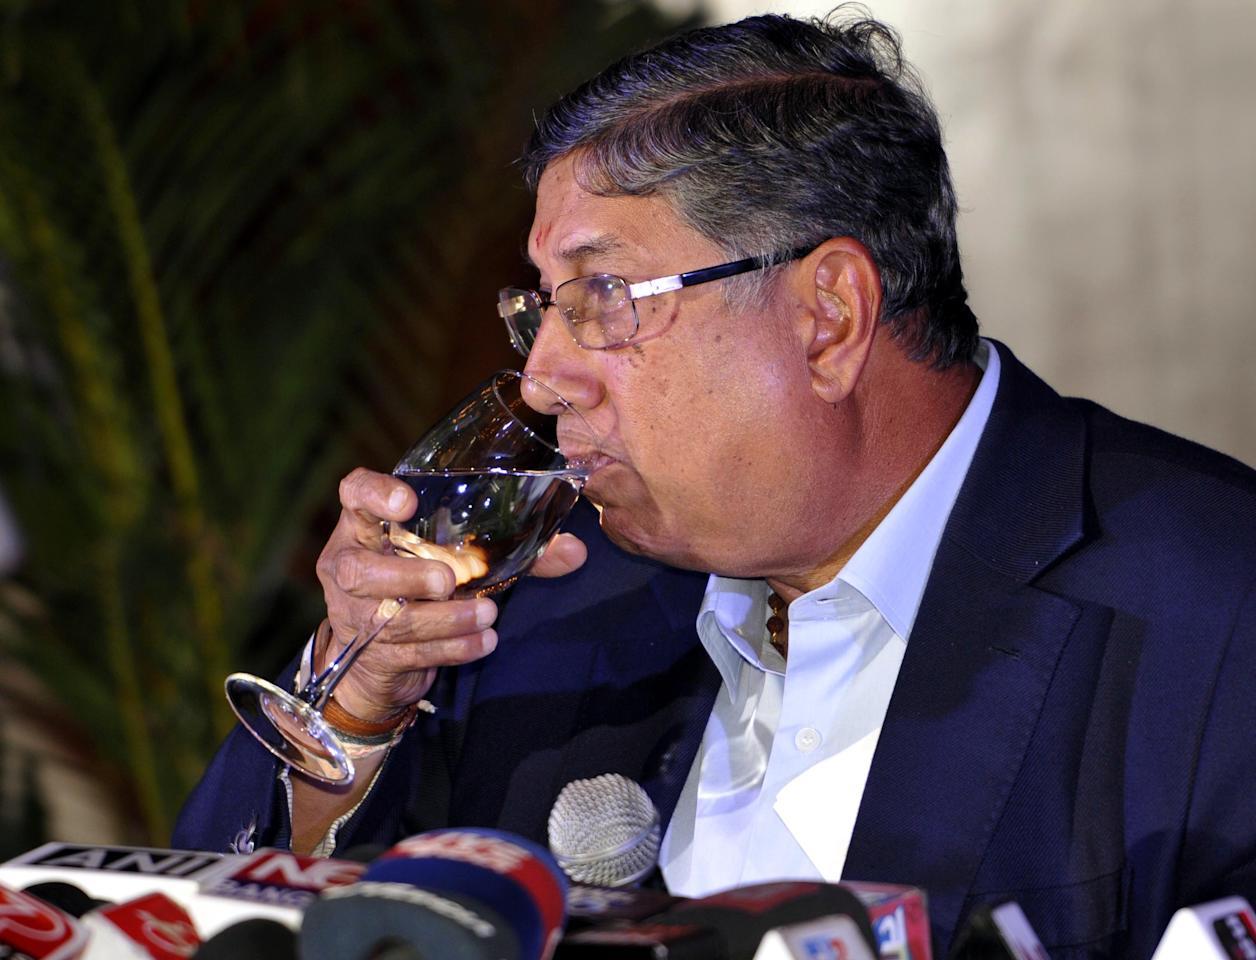 KOLKATA, INDIA - MAY 26: Board of Control of Cricket in India (BCCI) Chief, Narayanaswami Srinivasan holds a press conference at City Hotel on May 26, 2013 in Kolkata, India. The arrest of his son-in-law Meiyappan has given rise to the demands for his resignation from the post of BCCI president. (Photo by Subhankar Chakraborty/Hindustan Times via Getty Images)